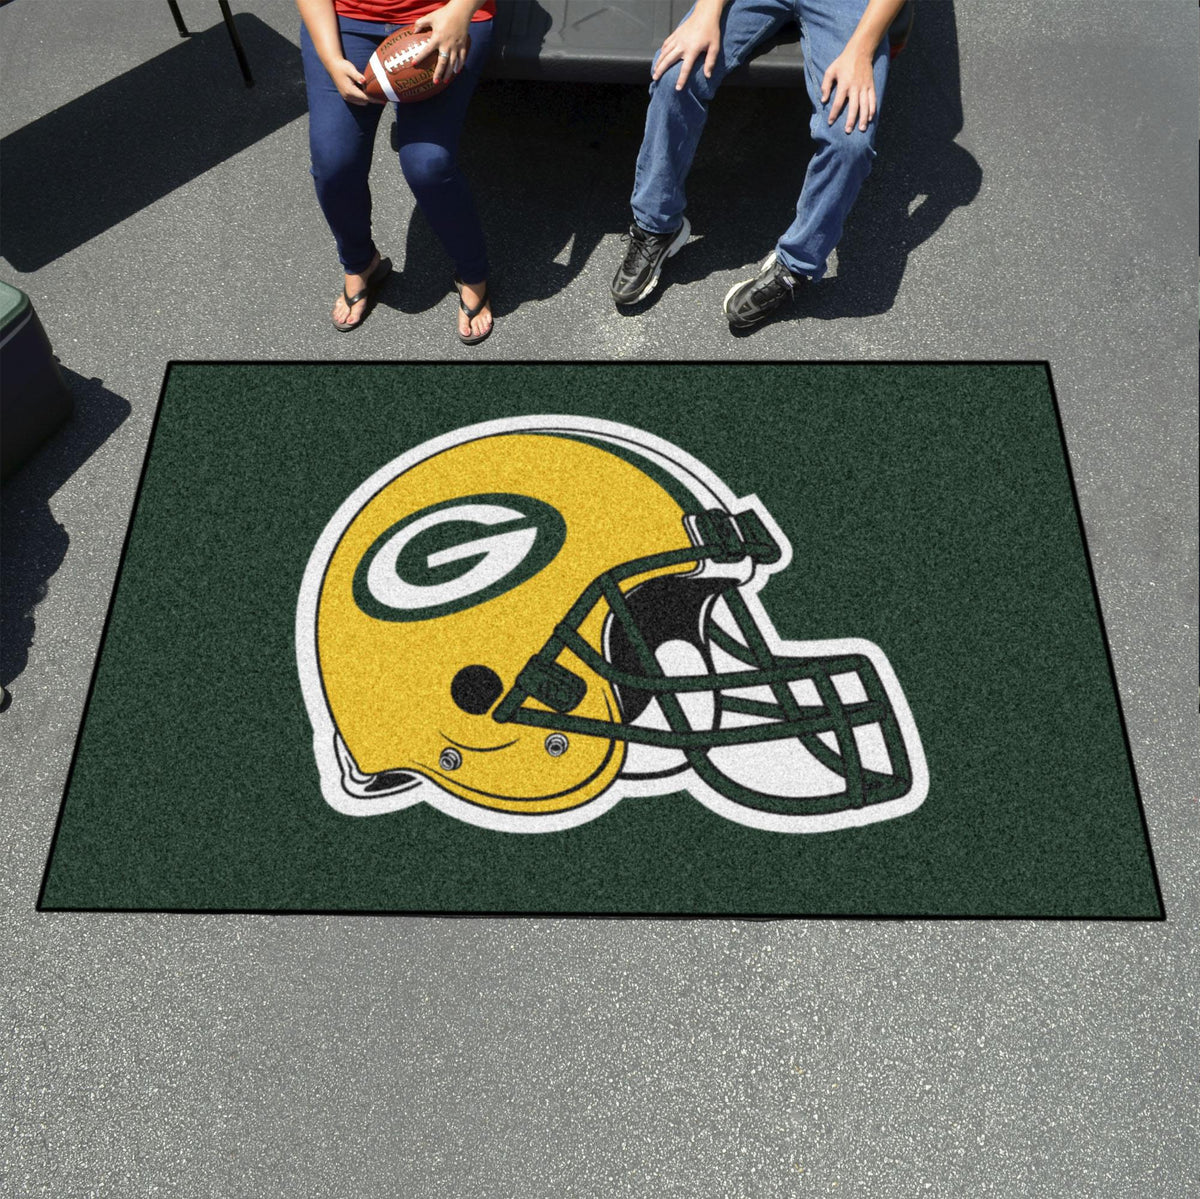 "NFL - Ulti-Mat, 59.5"" x 94.5"" NFL Mats, Rectangular Mats, Ulti-Mat, NFL, Home Fan Mats Green Bay Packers"